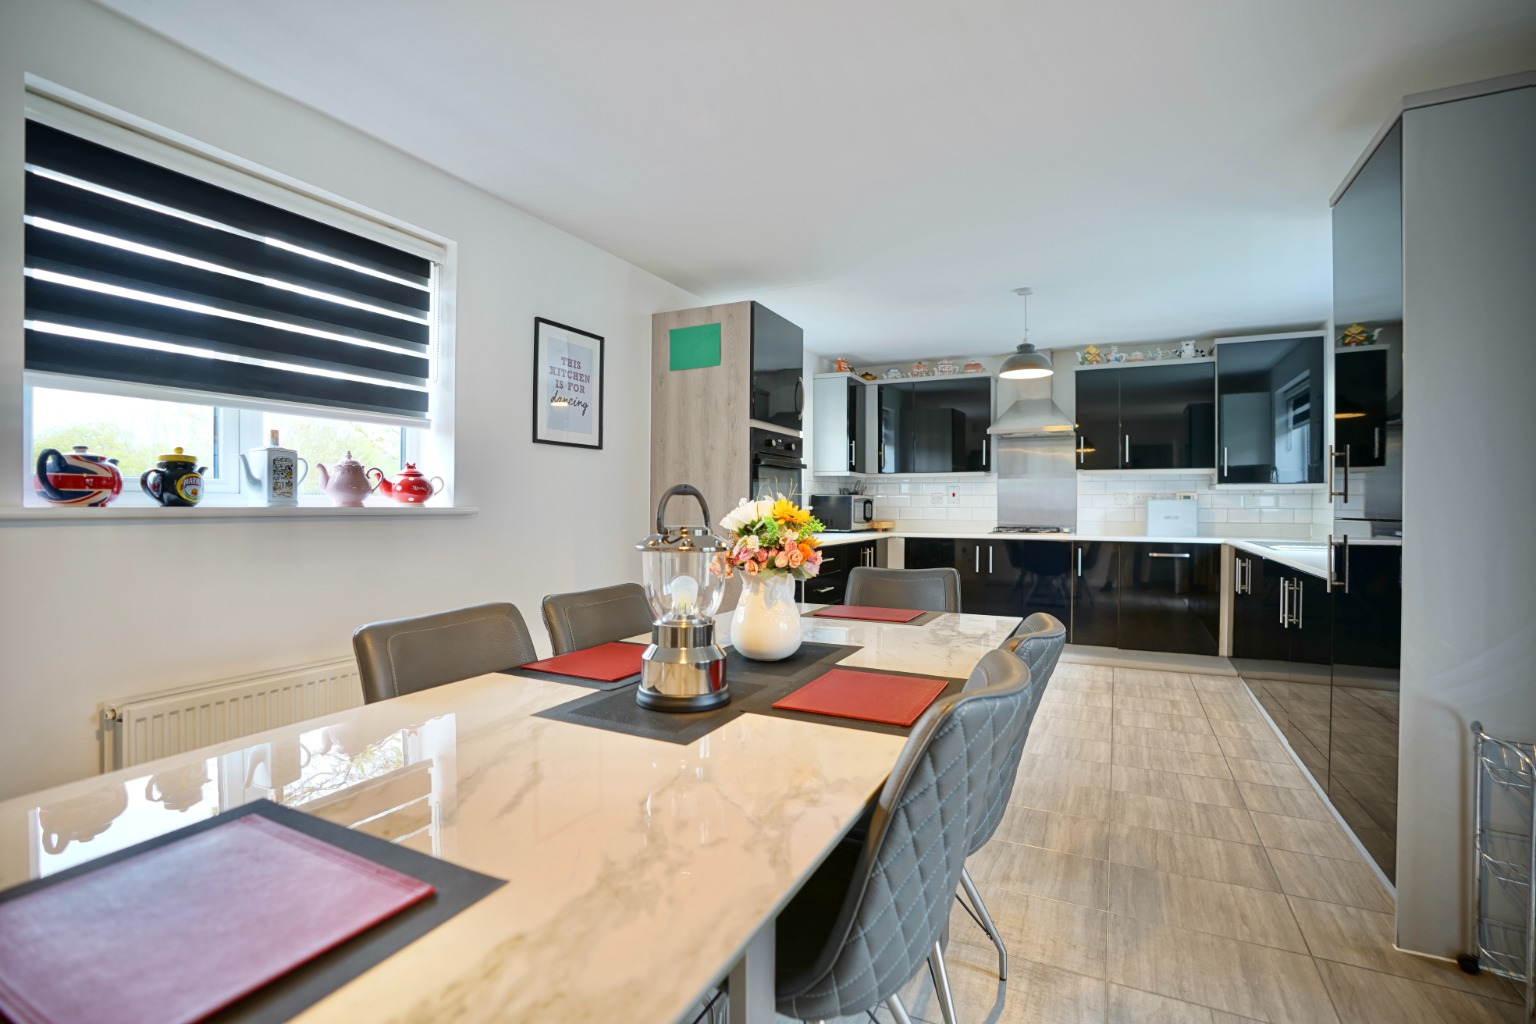 4 bed detached house for sale in Daffodil Close, St. Neots  - Property Image 4